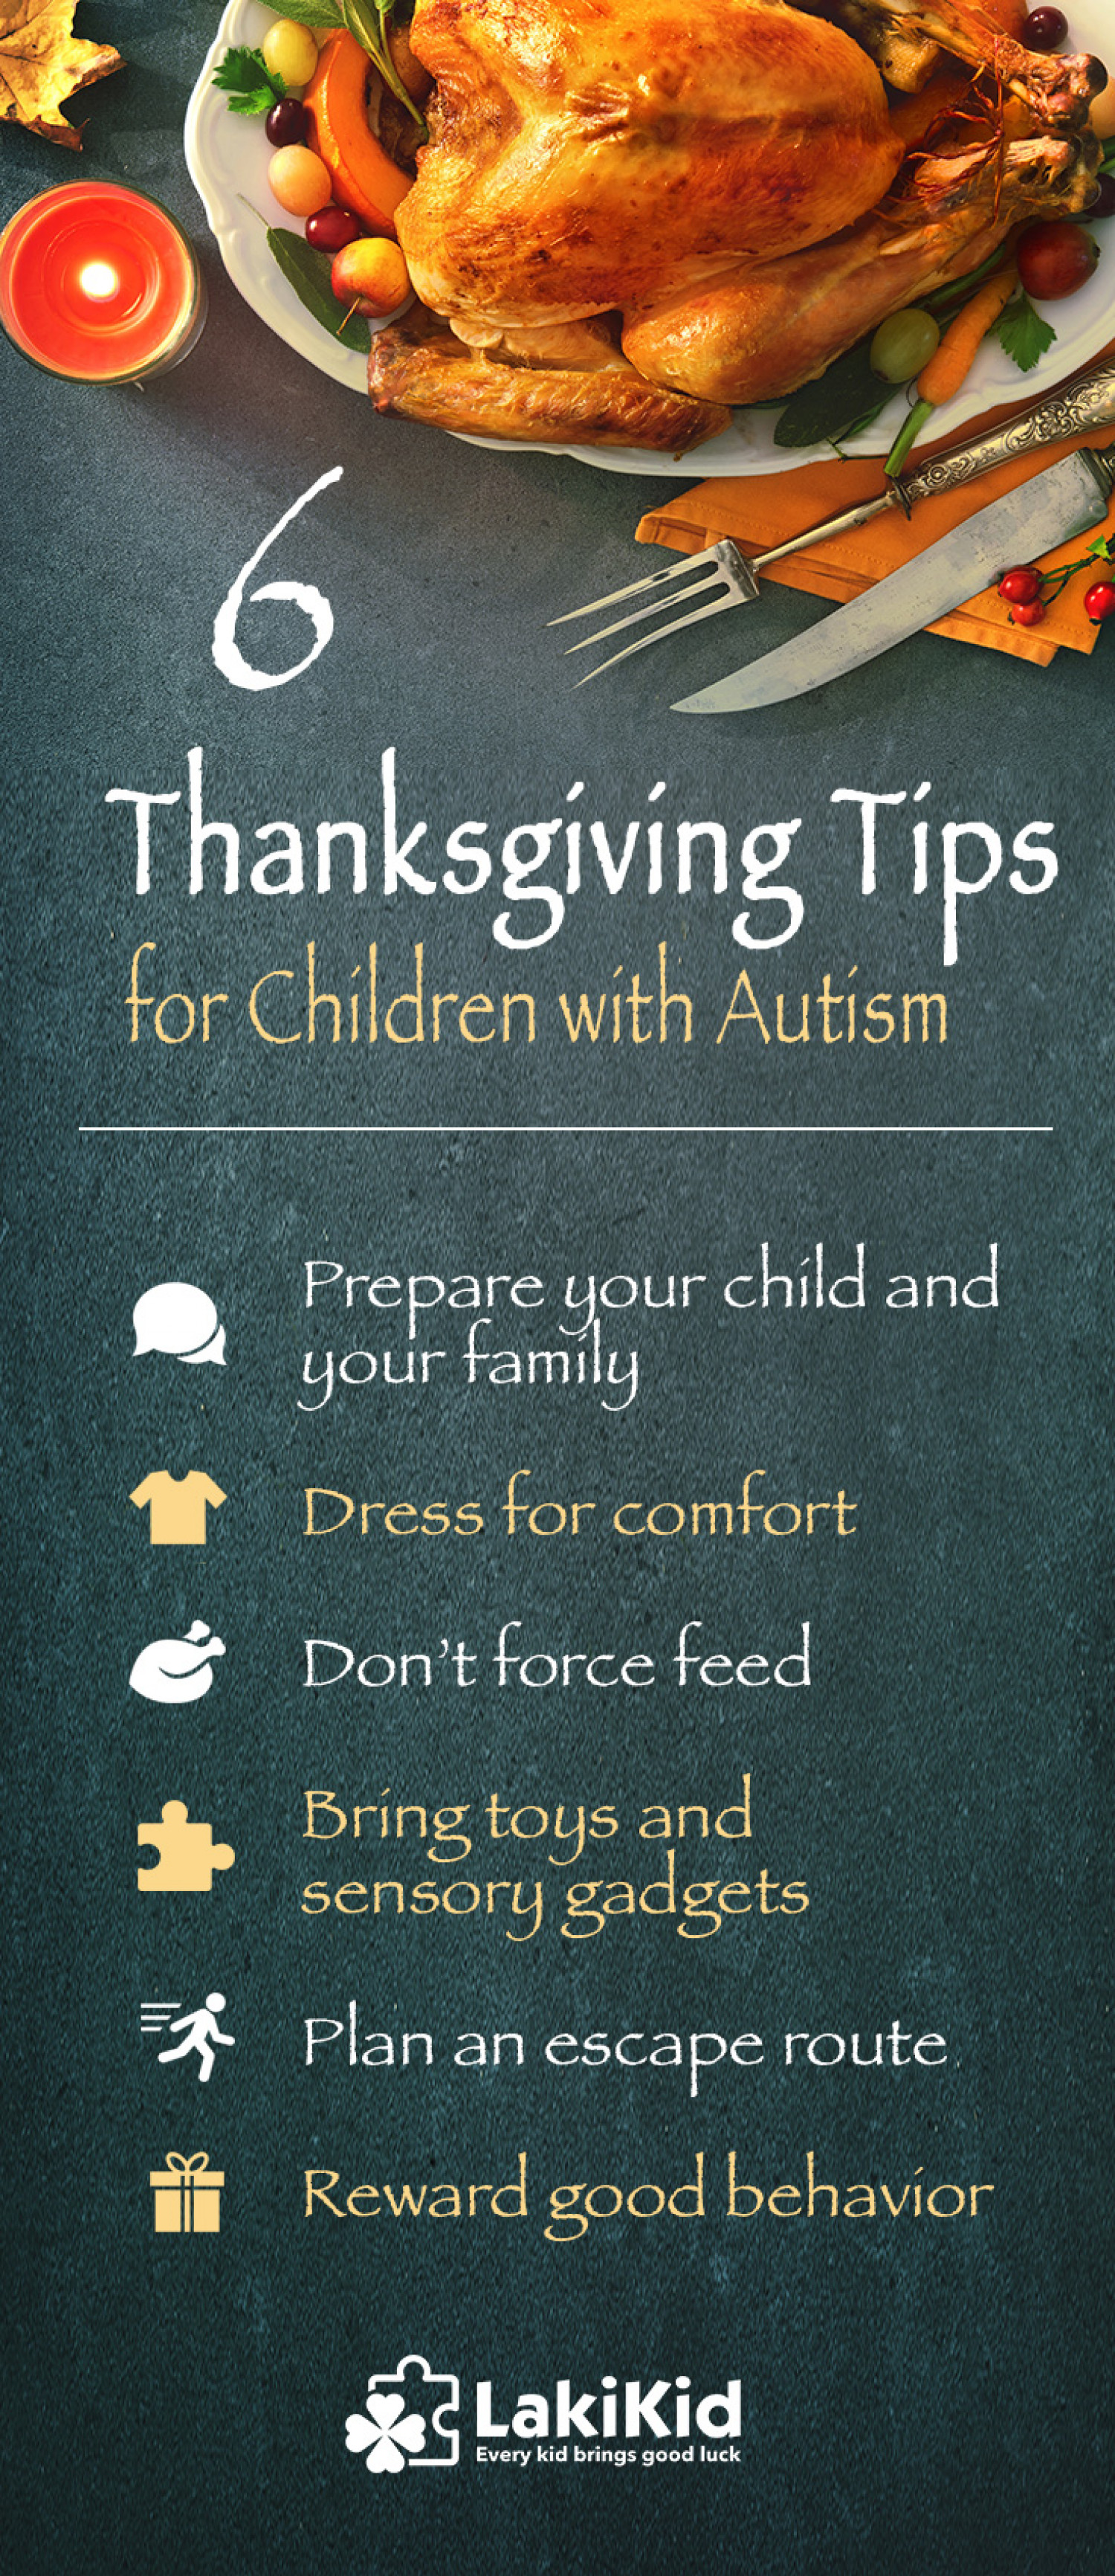 6 Thanksgiving Tips for Children with Autism  Infographic